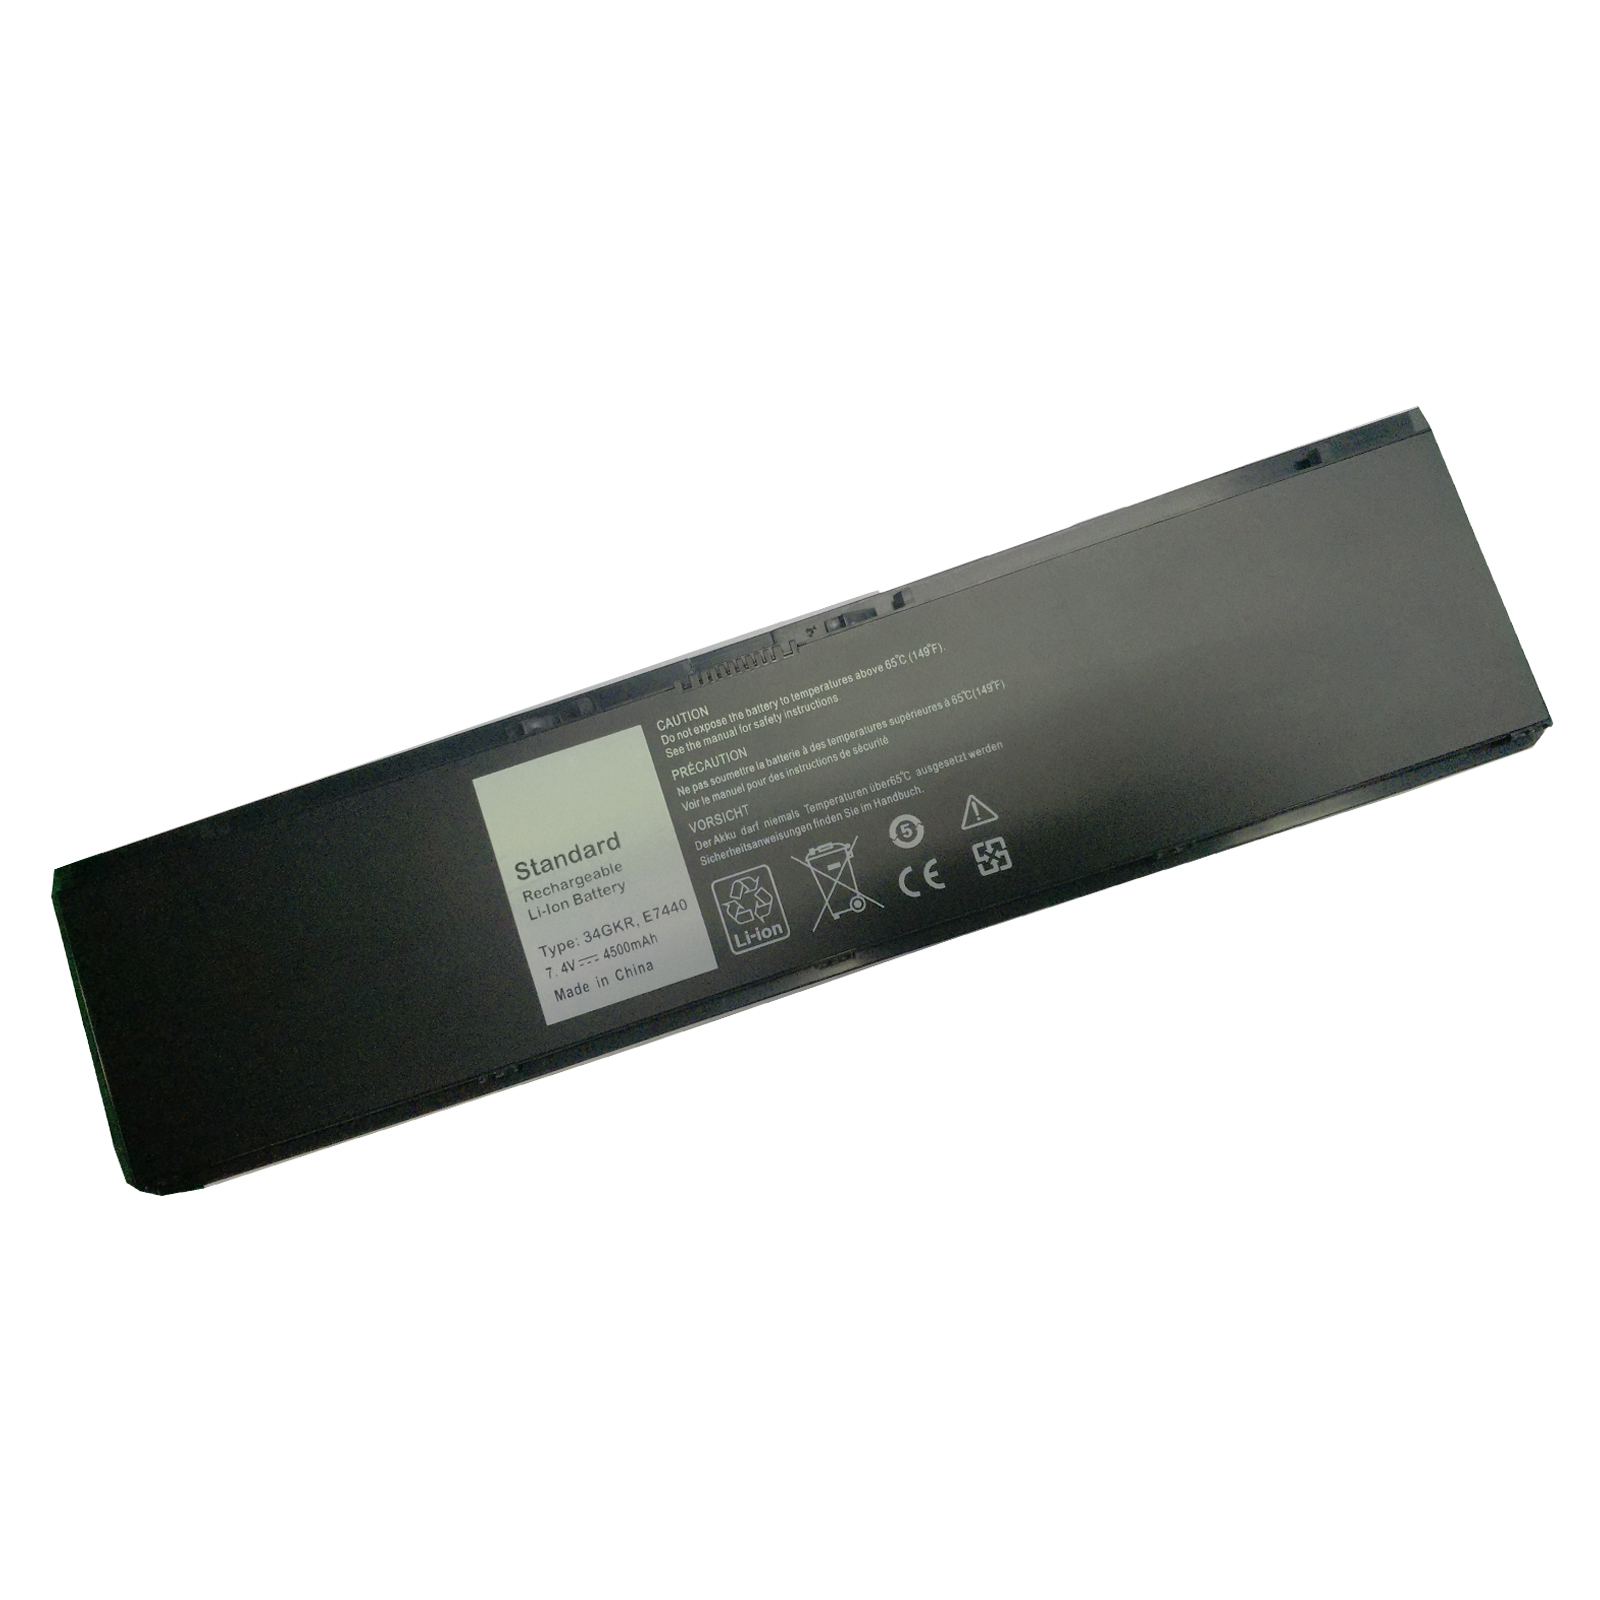 Superb Choice® Battery for DELL 451-BBFT - image 1 of 1